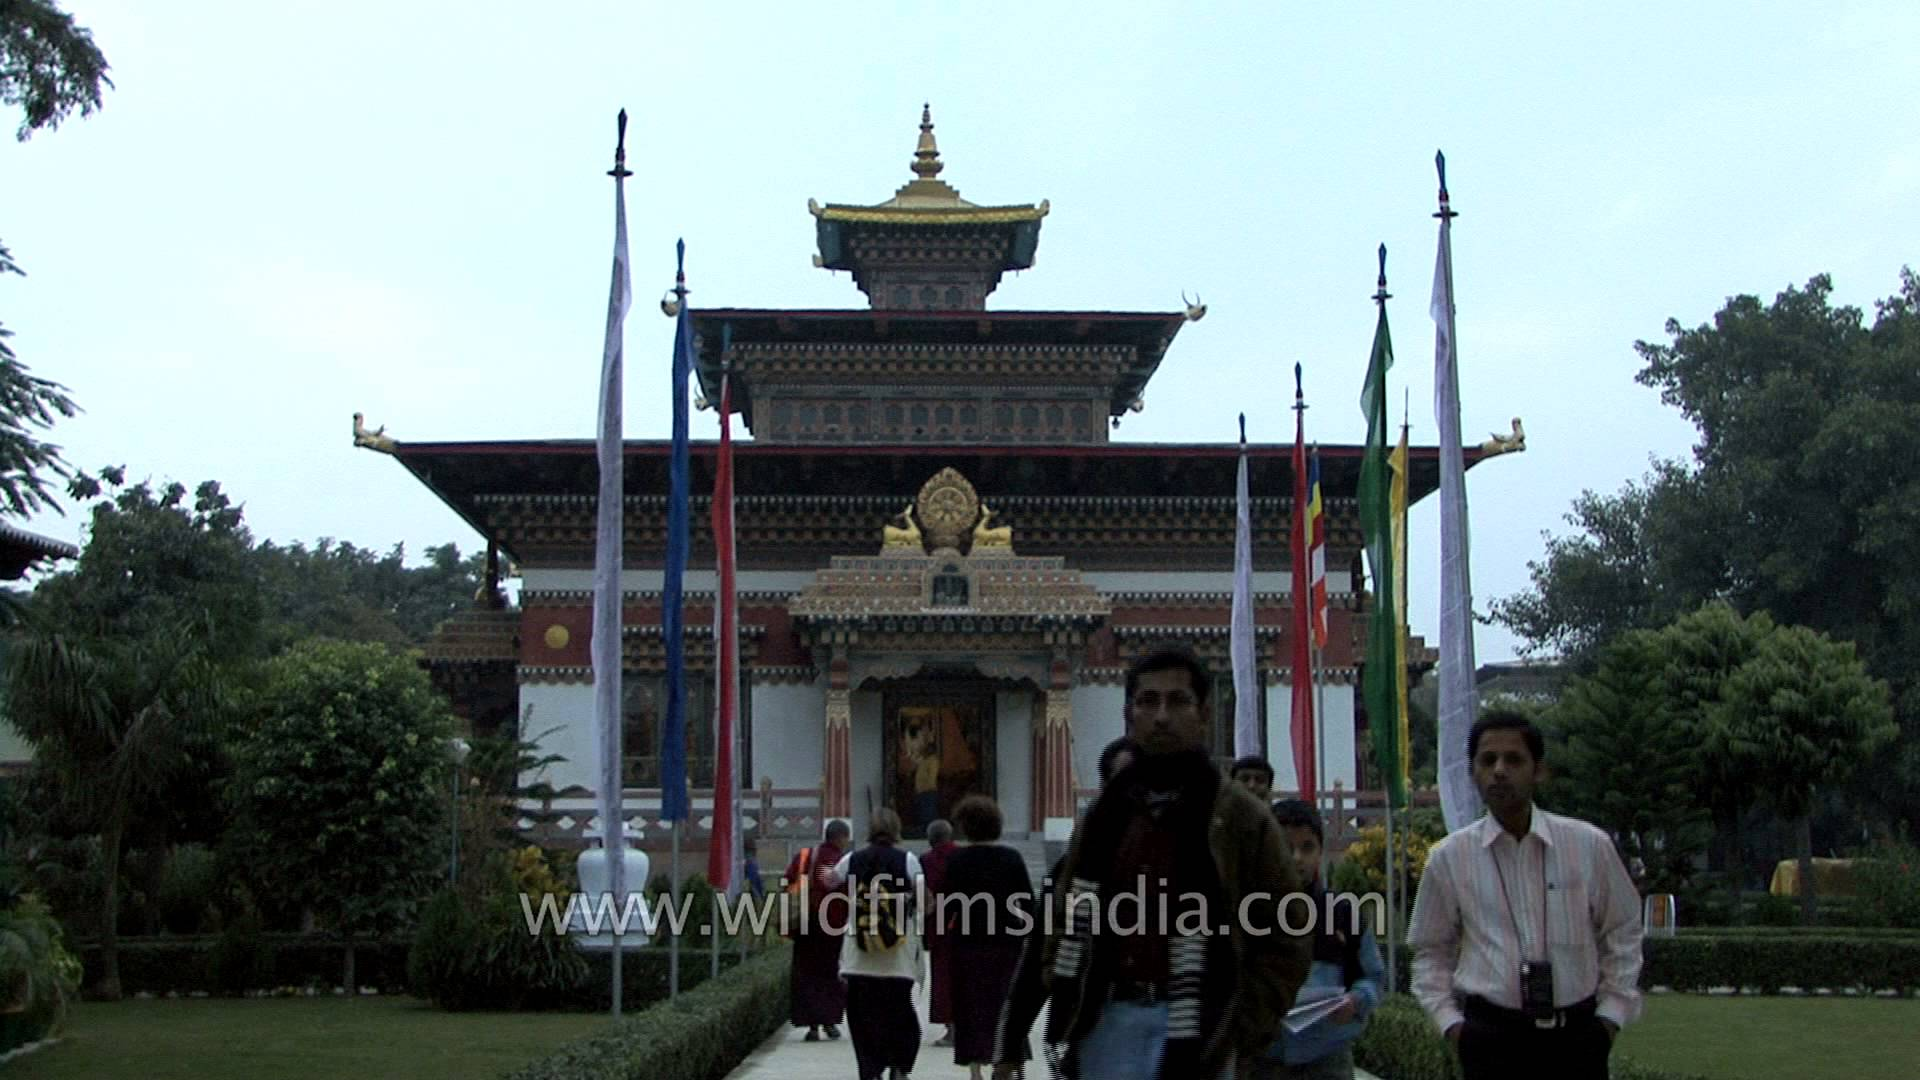 Bhutanese Monastery Bodhgaya, Visitors at the Royal Bhutan Temple and Thai monastery, Bodhgaya ...